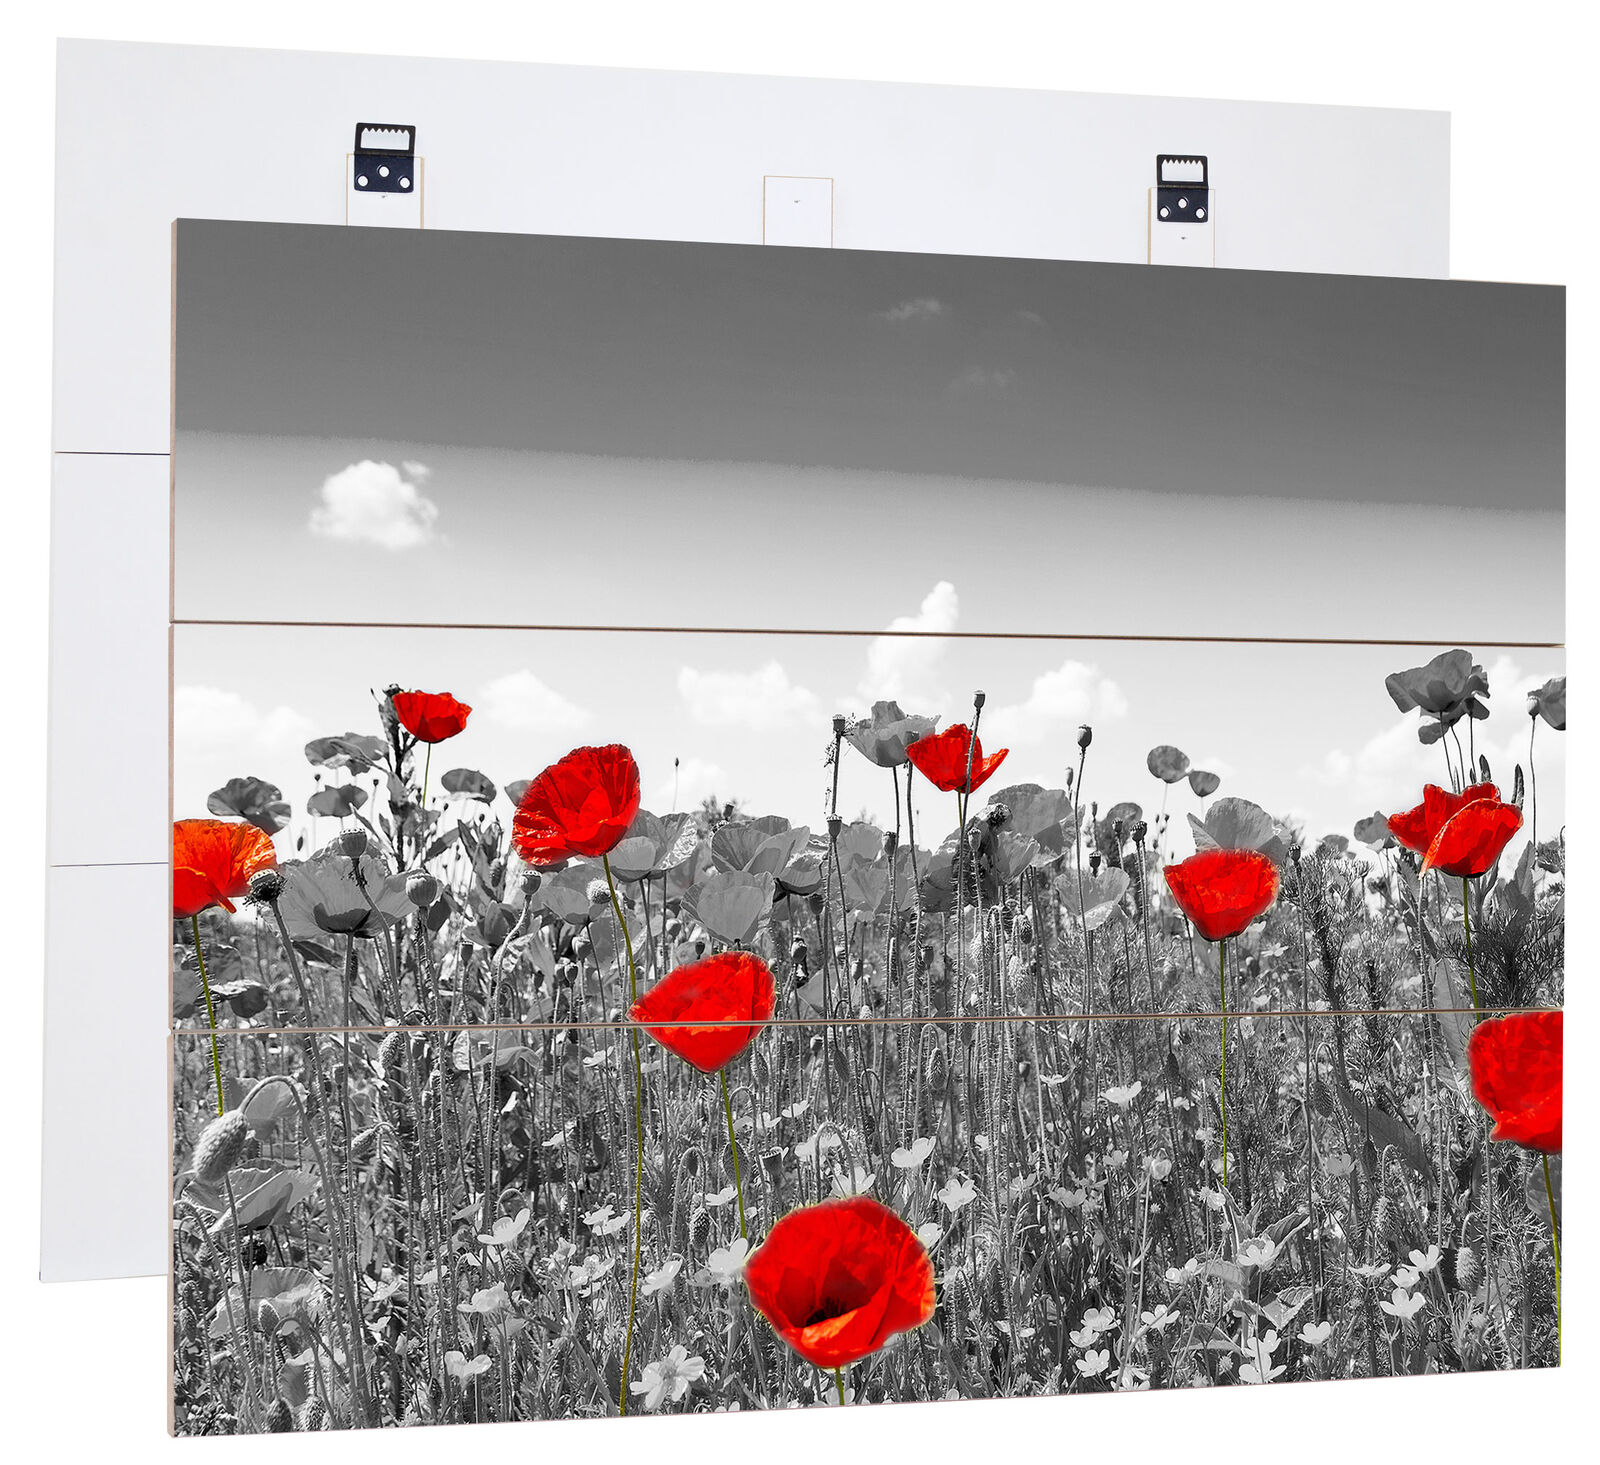 Superbe Rouge Shining Coquelicot B&w - Authentique Mdf-Holzbild Bretterlook,